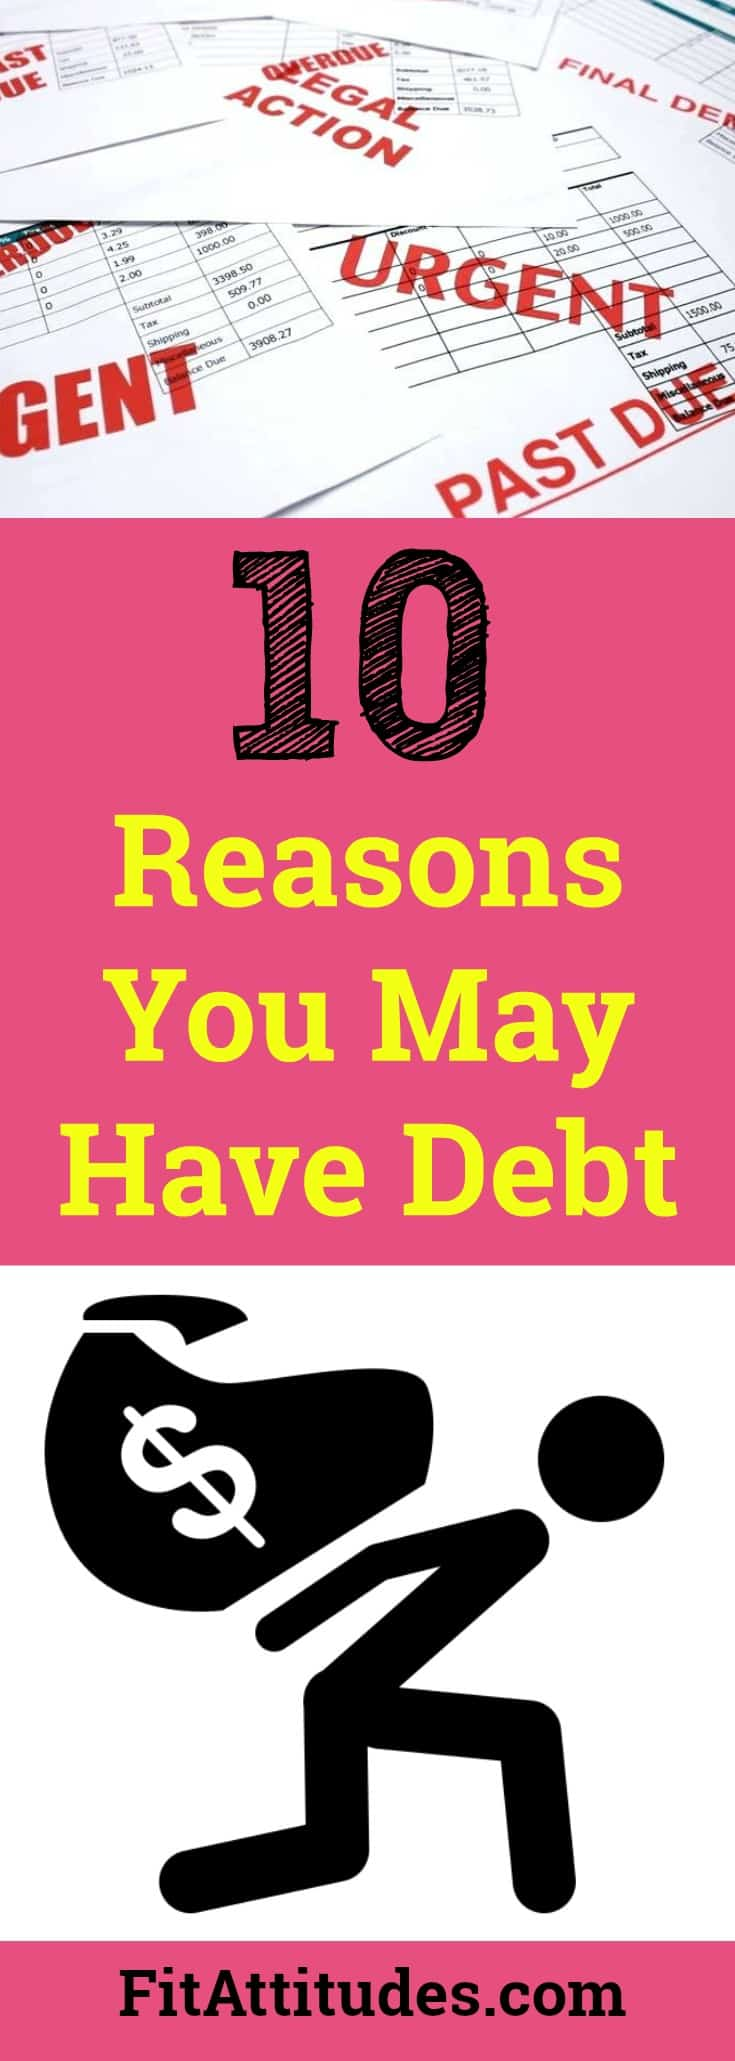 Reasons for Debt